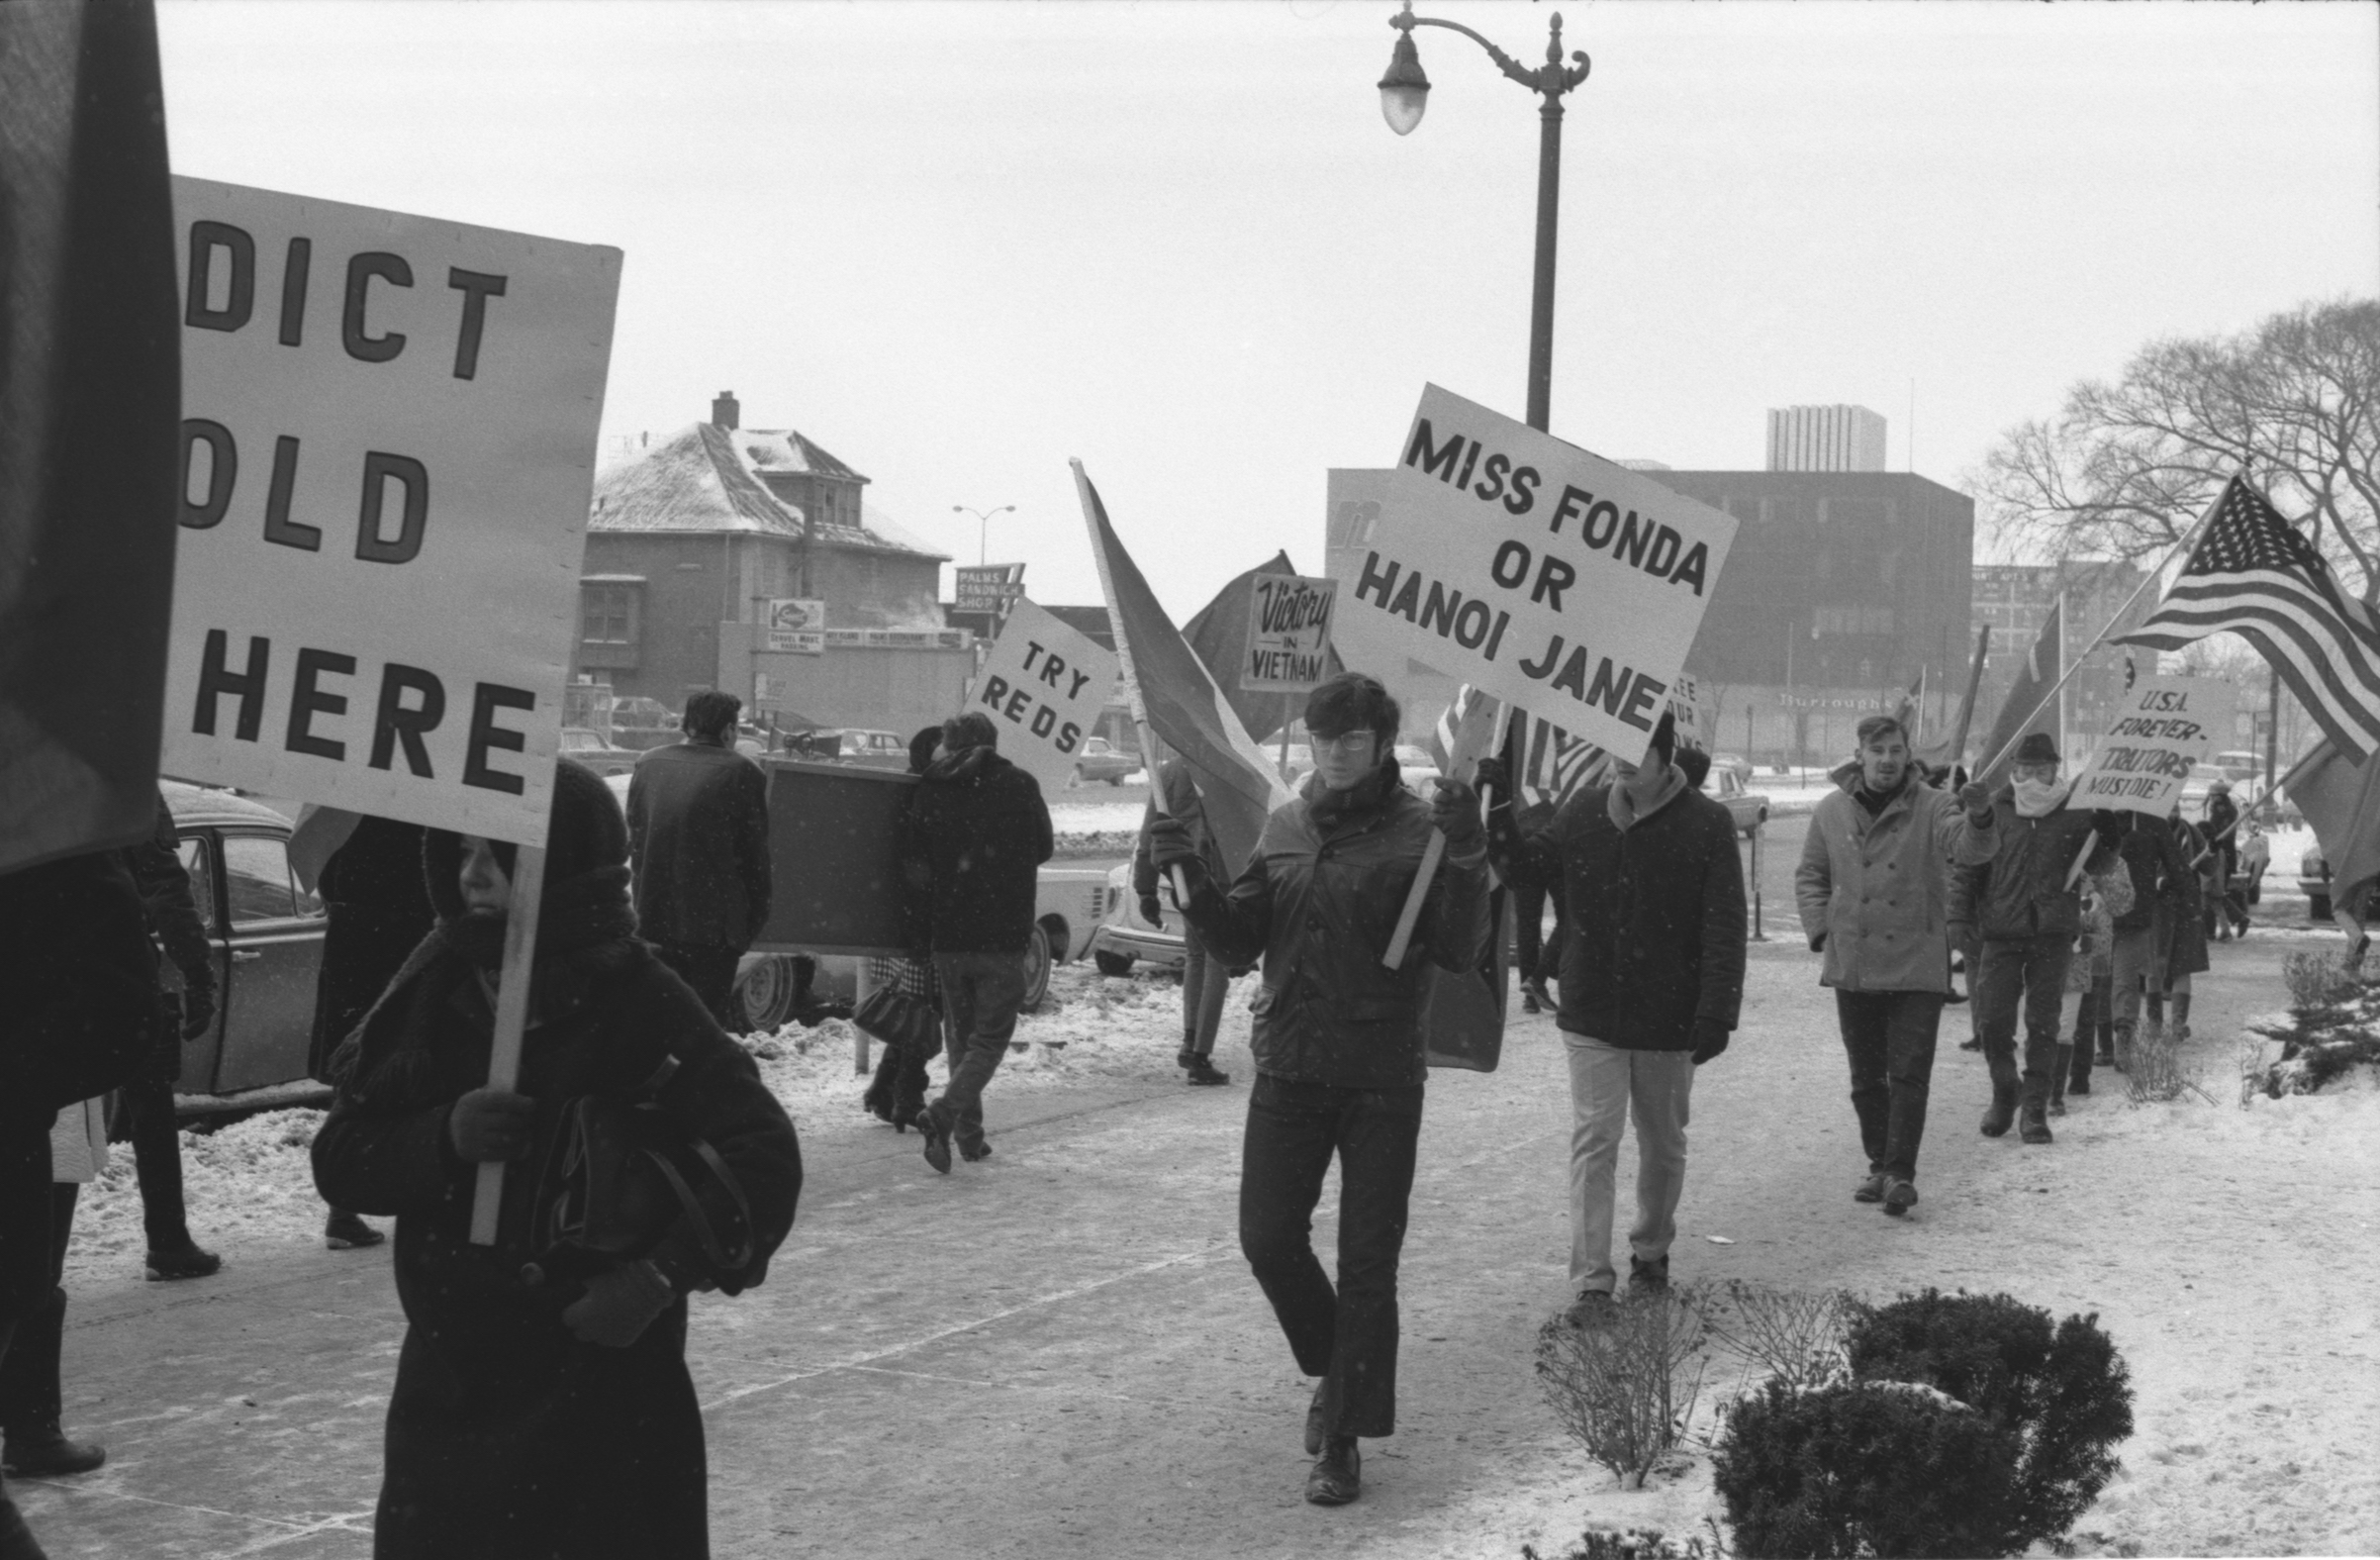 Protesters carrying signs protesting Jane Fonda's visit to Hanoi outside Howard Johnson's Hotel in Detroit during the time of the  Winter Soldier Investigation,  Detroit, 1971.